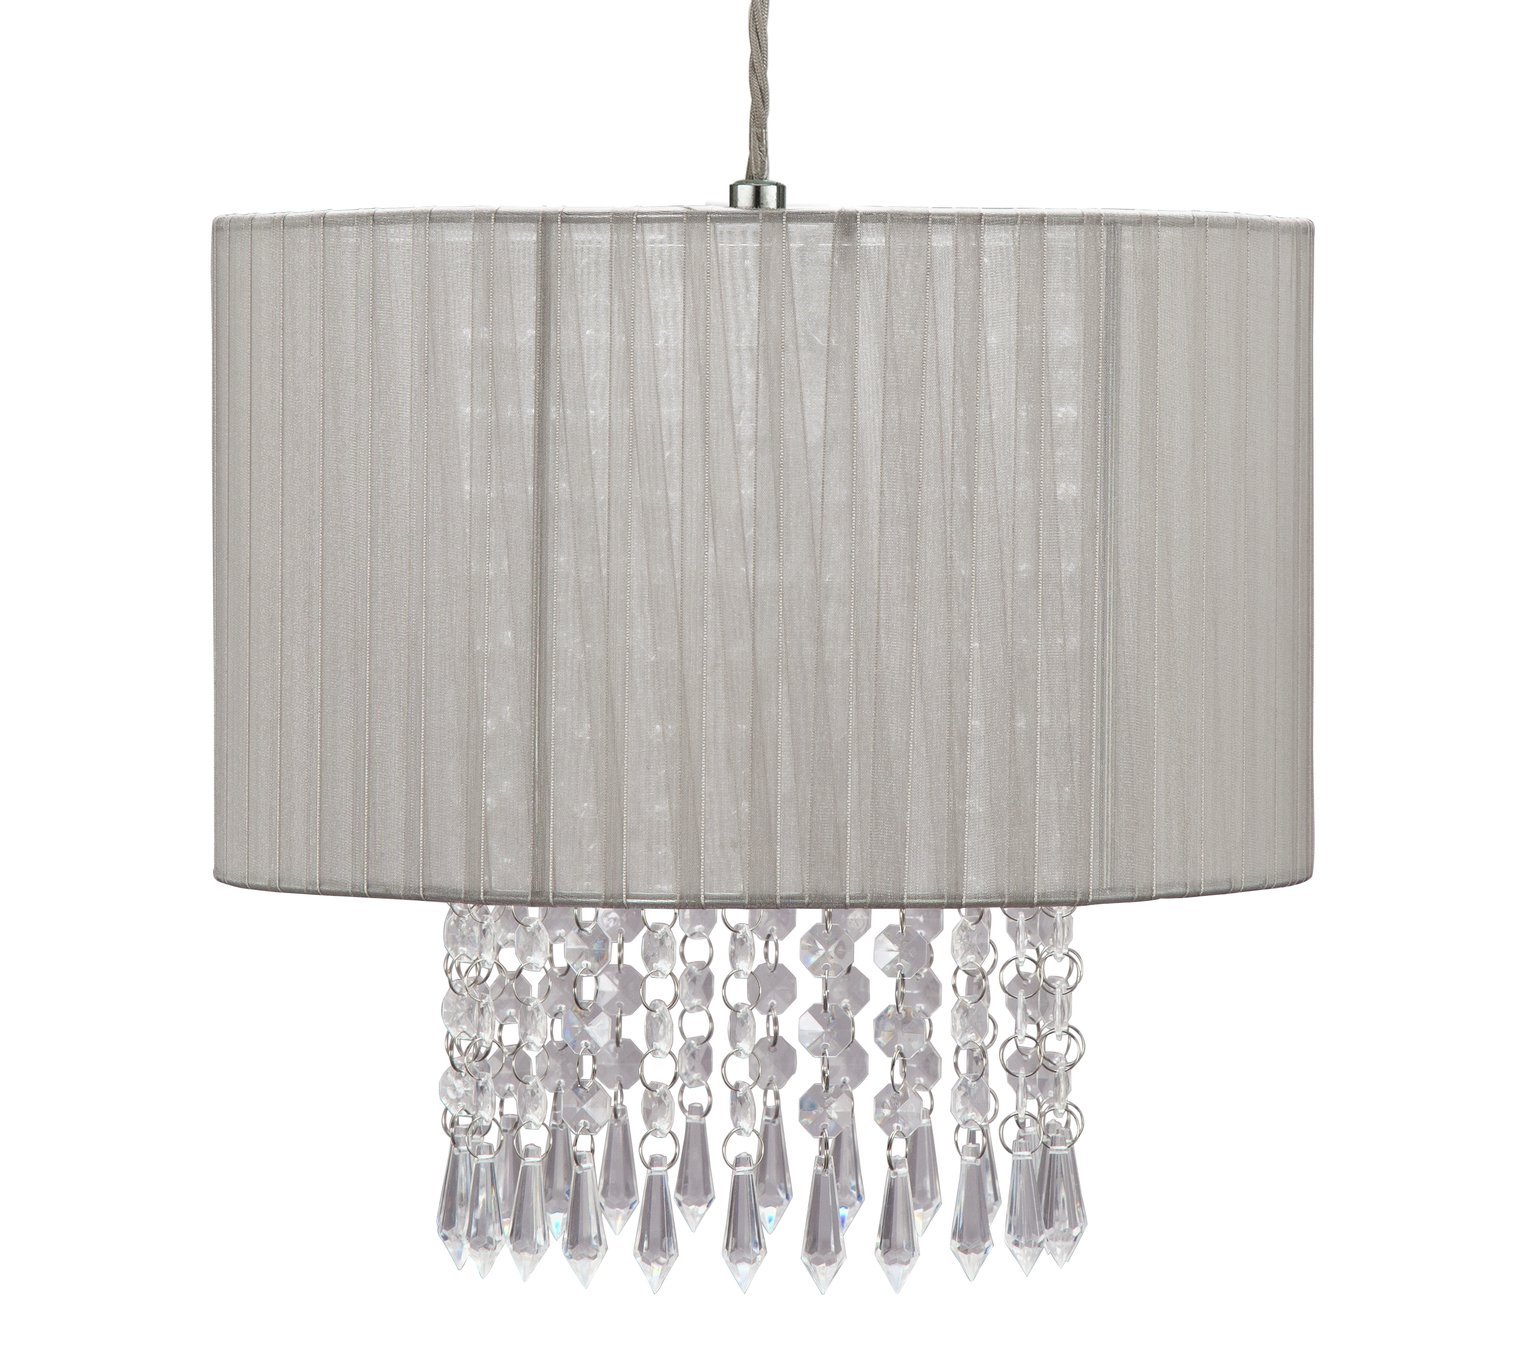 lamp shades page 1 argos price tracker pricehistory. Black Bedroom Furniture Sets. Home Design Ideas